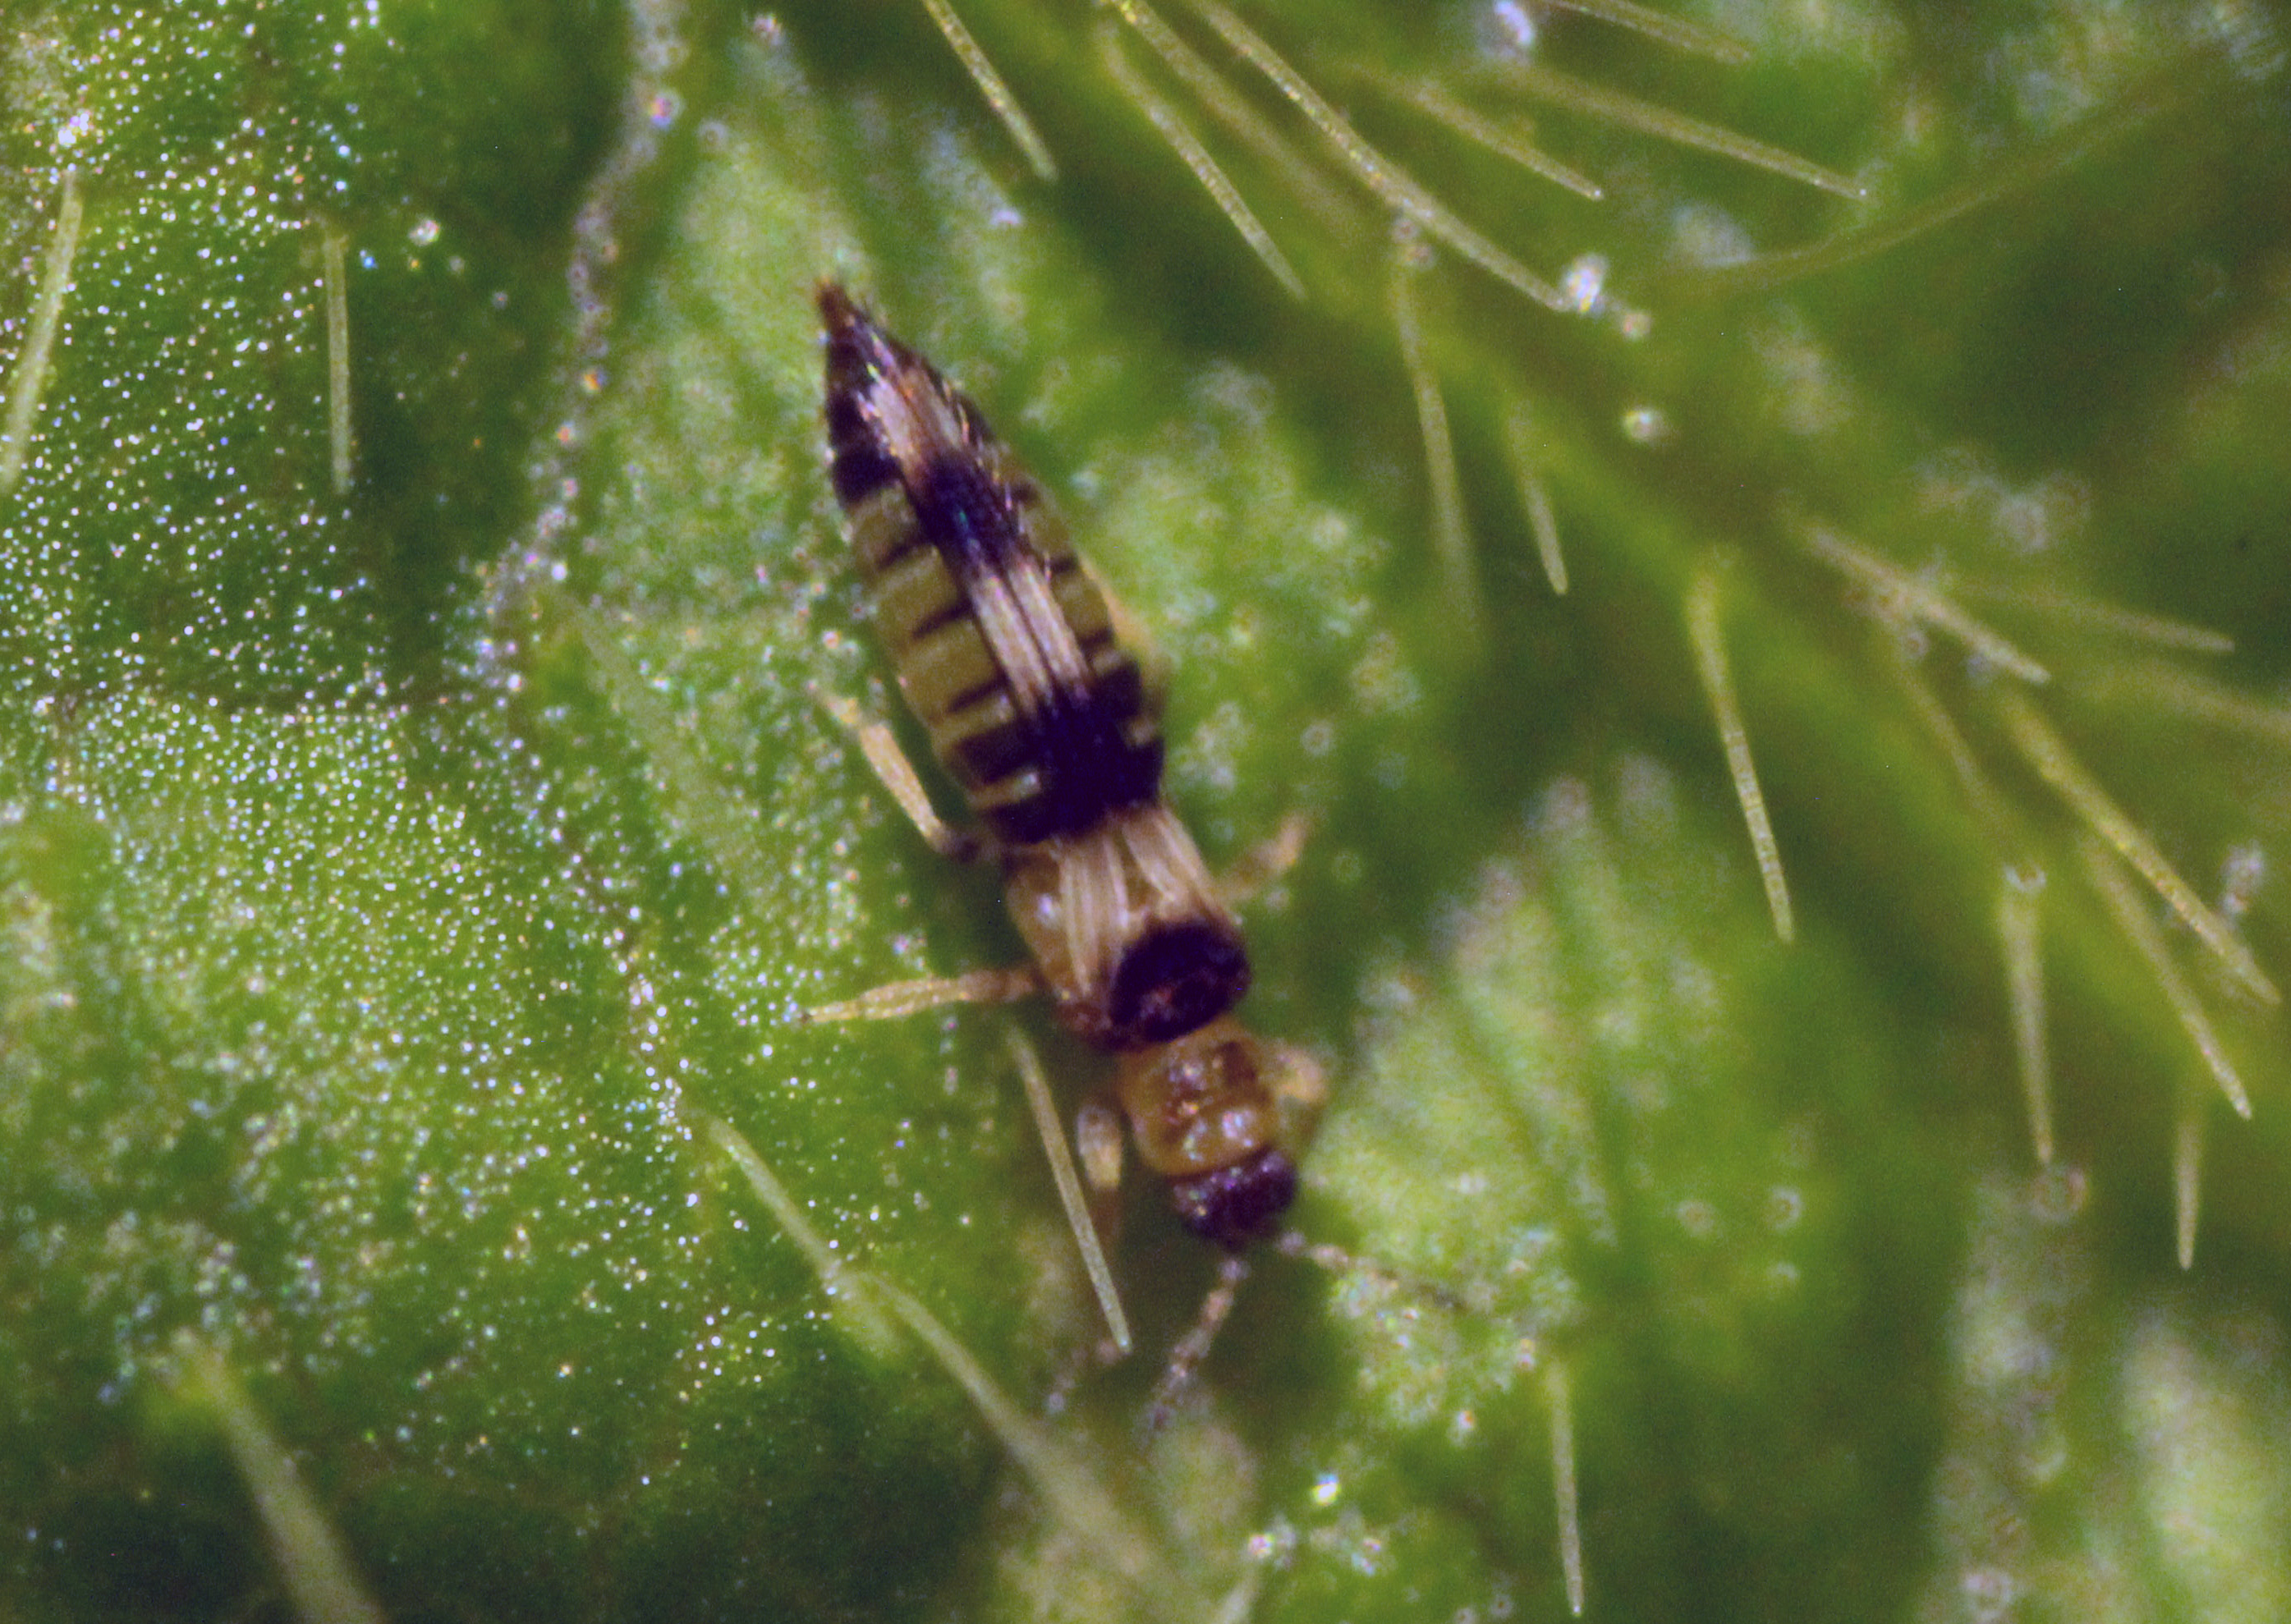 Hot, dry weather that favors thrips may cause increased disease spread.